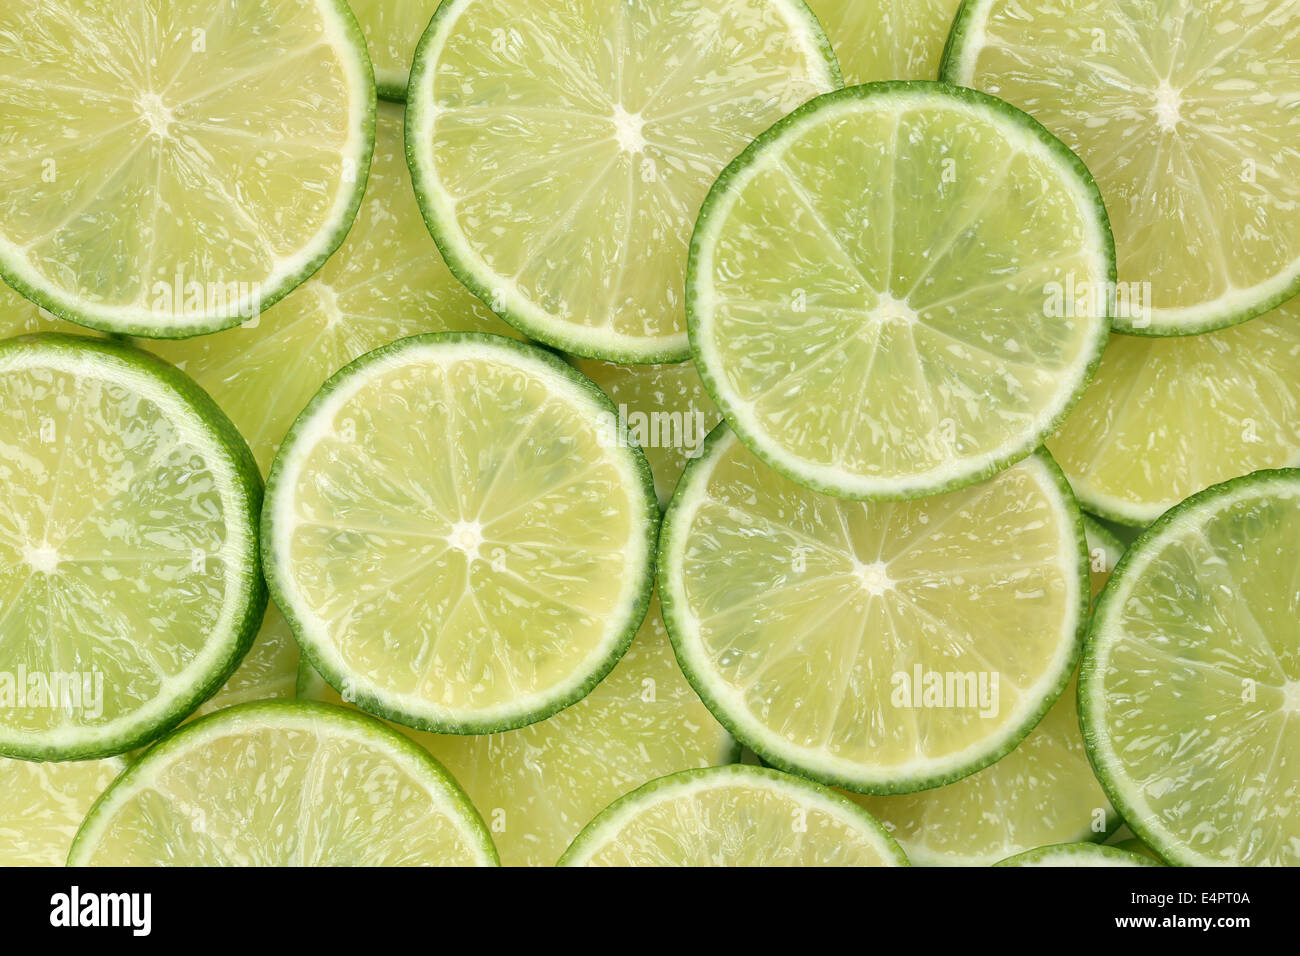 Background made from sliced lime citrus fruits - Stock Image